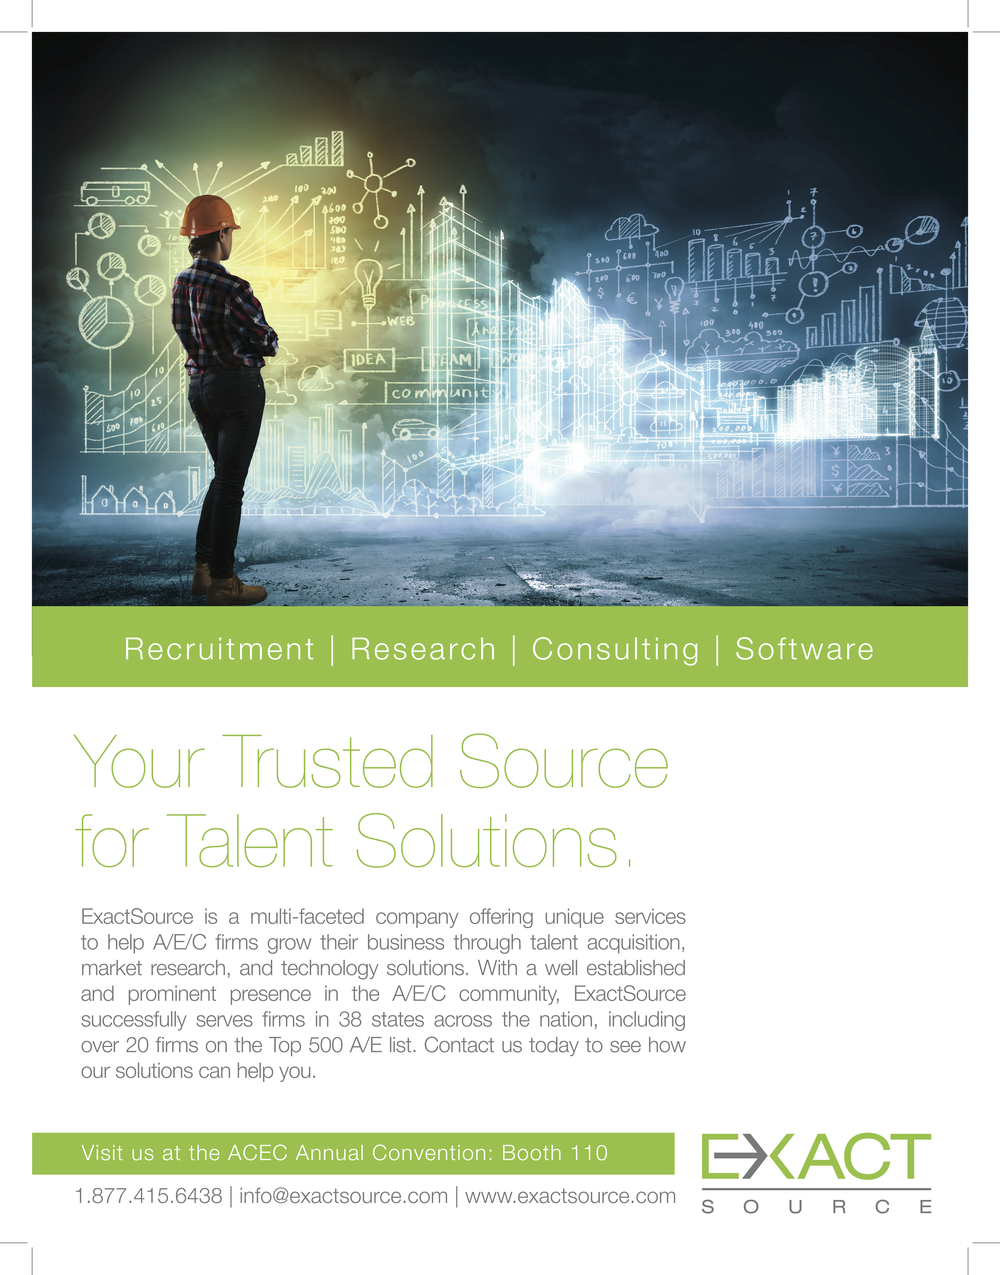 ExactSourceAD_Your Trusted Source_OnePage_January2014_v4.jpg